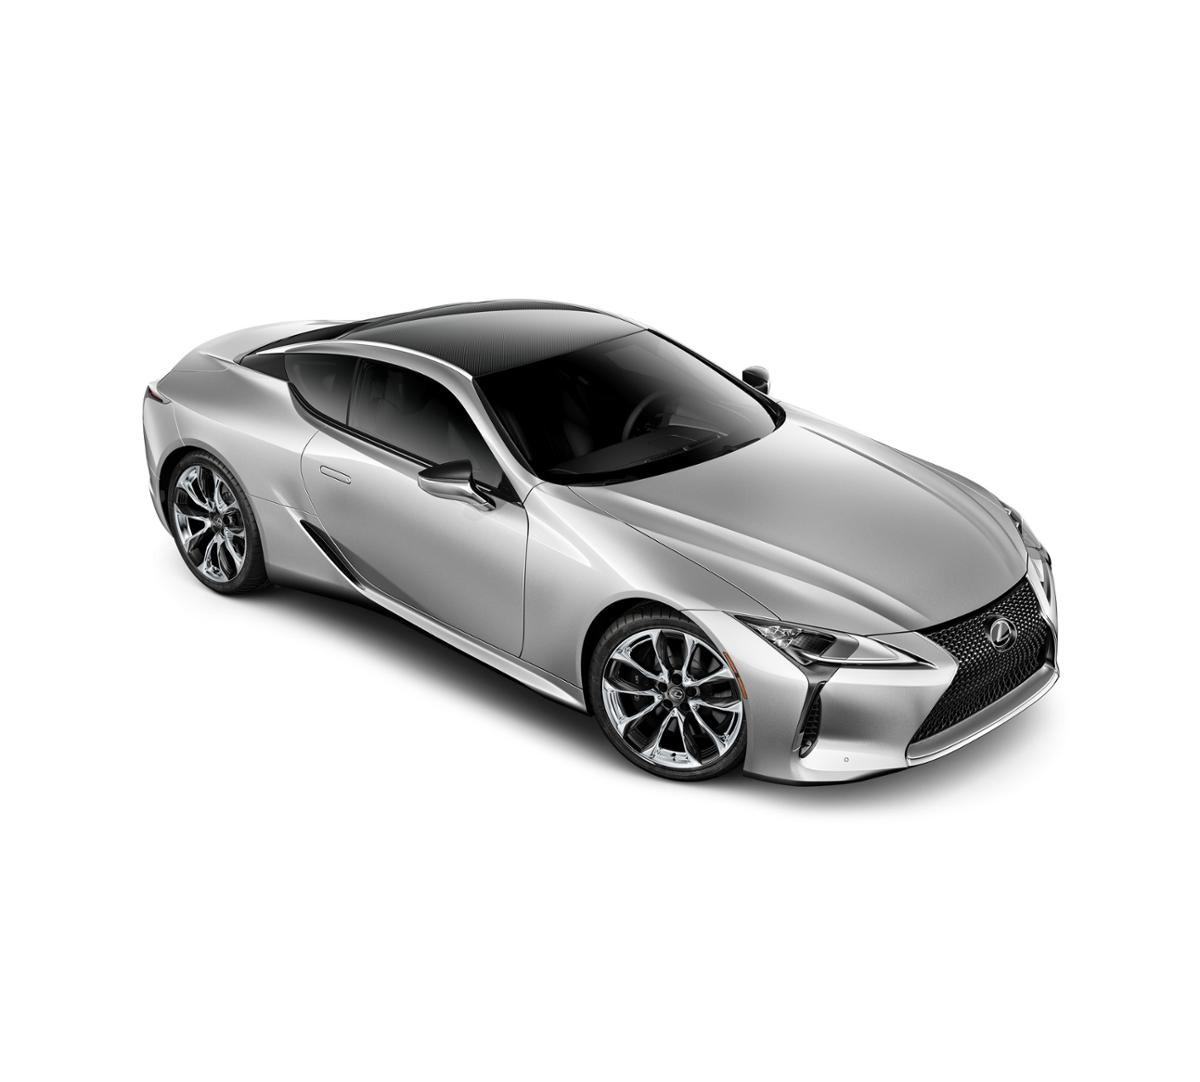 2018 lexus lc 500 for sale at south county lexus in mission viejo orange county ca lexus. Black Bedroom Furniture Sets. Home Design Ideas